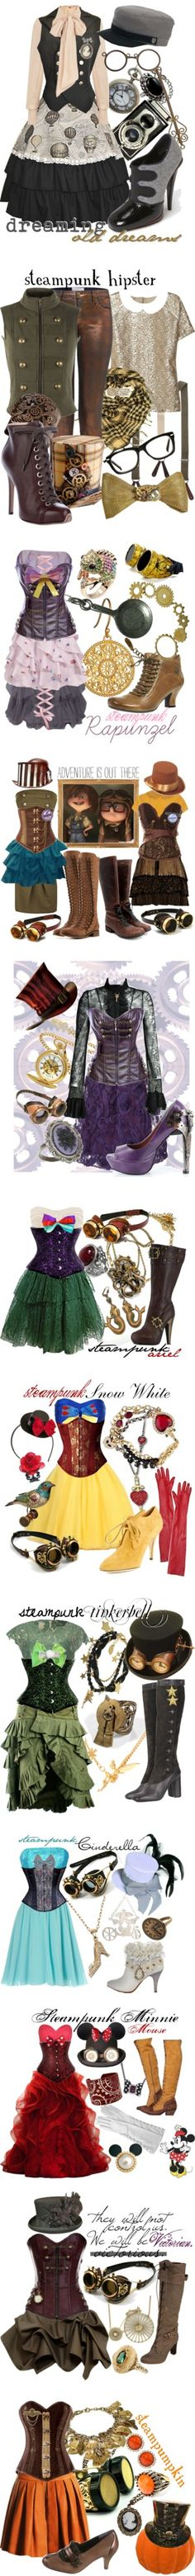 """Steampunk"" by princesschandler ❤ liked on Polyvore - not sure if id ever wear any of this but i love the idea, and steampunk disney princesses? ! Hell yeah!"